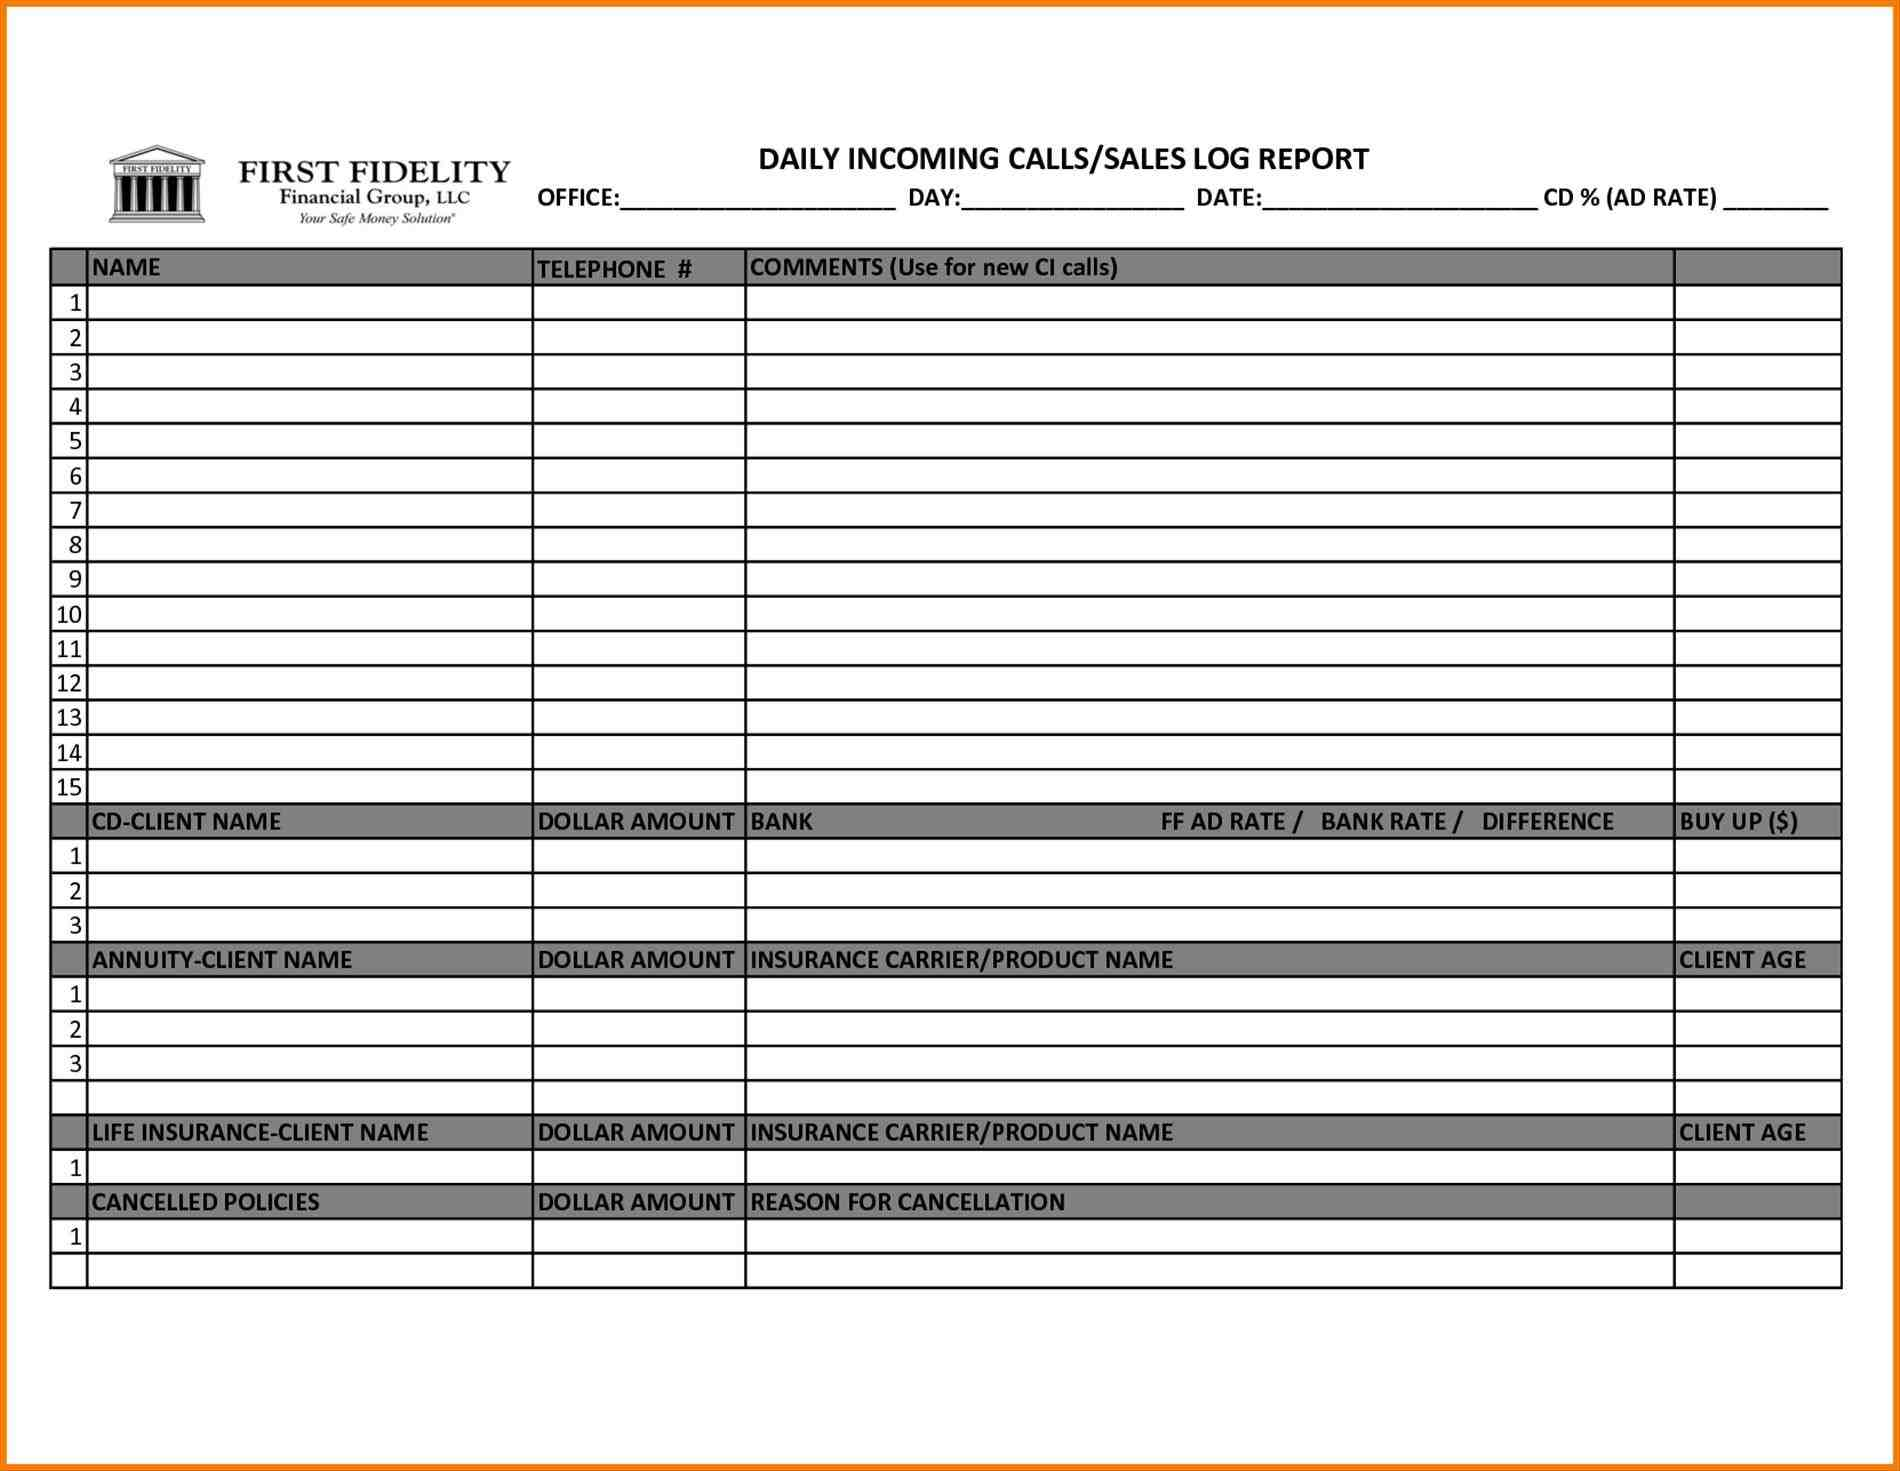 Call Report Template Excel visit report format templates cool weekly sales call rhgayconet reports free high quality templatesrhhanselbaumancom sales Sales Call